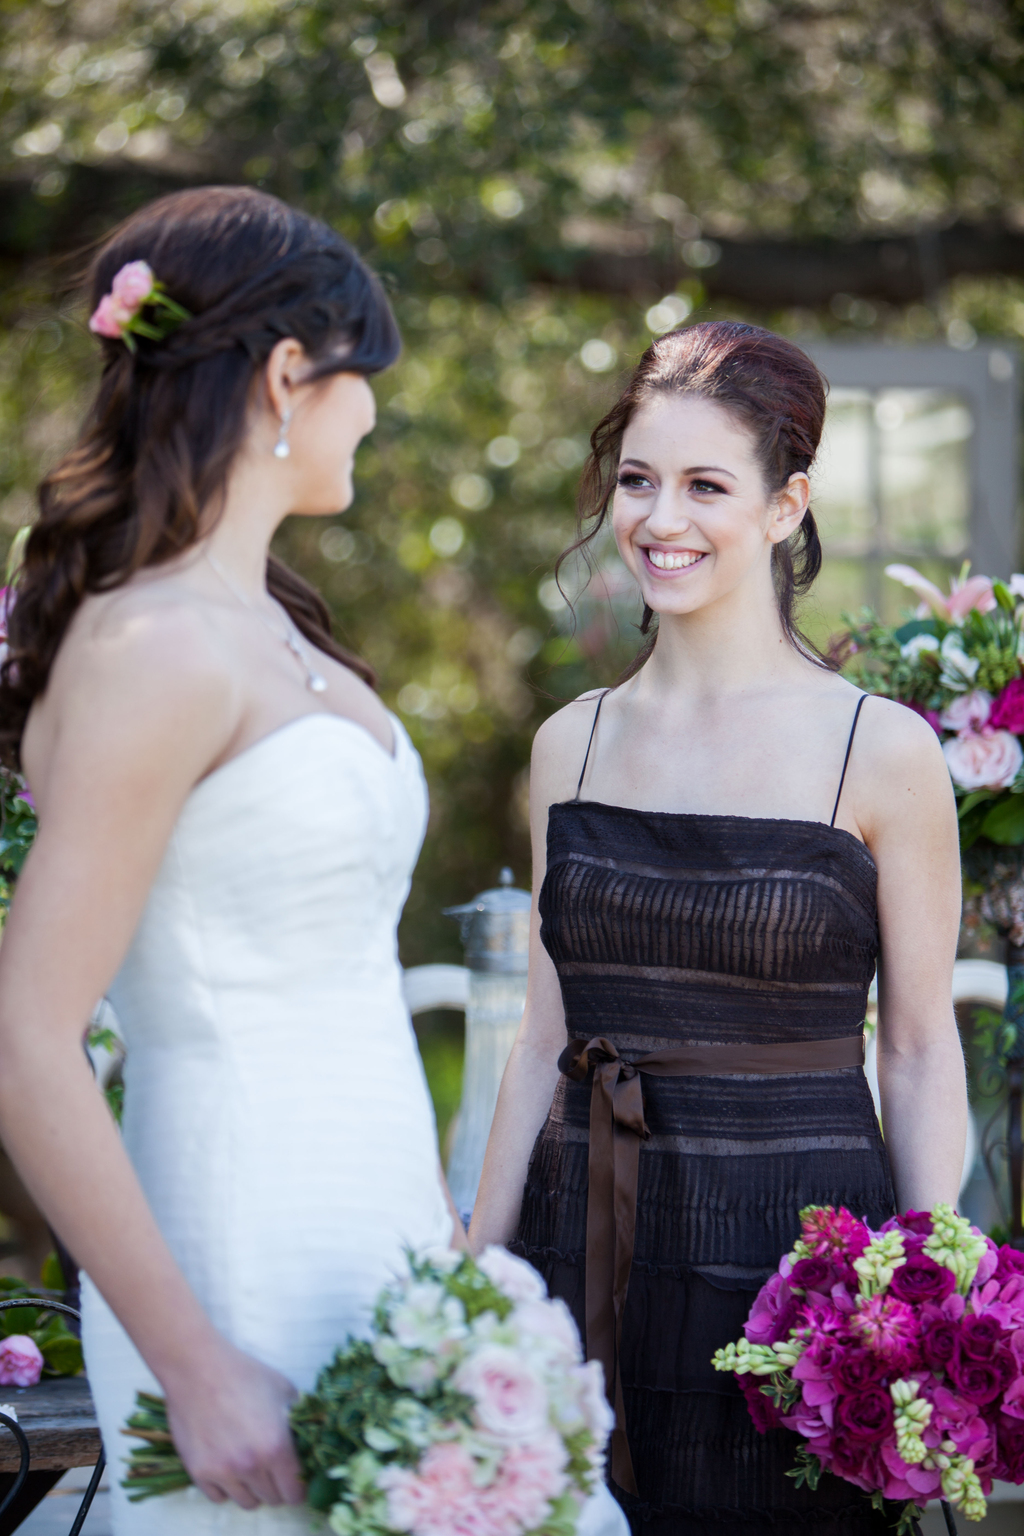 Chic-bridesmaid-in-black-and-chocolate-frock-poses-with-bride.full